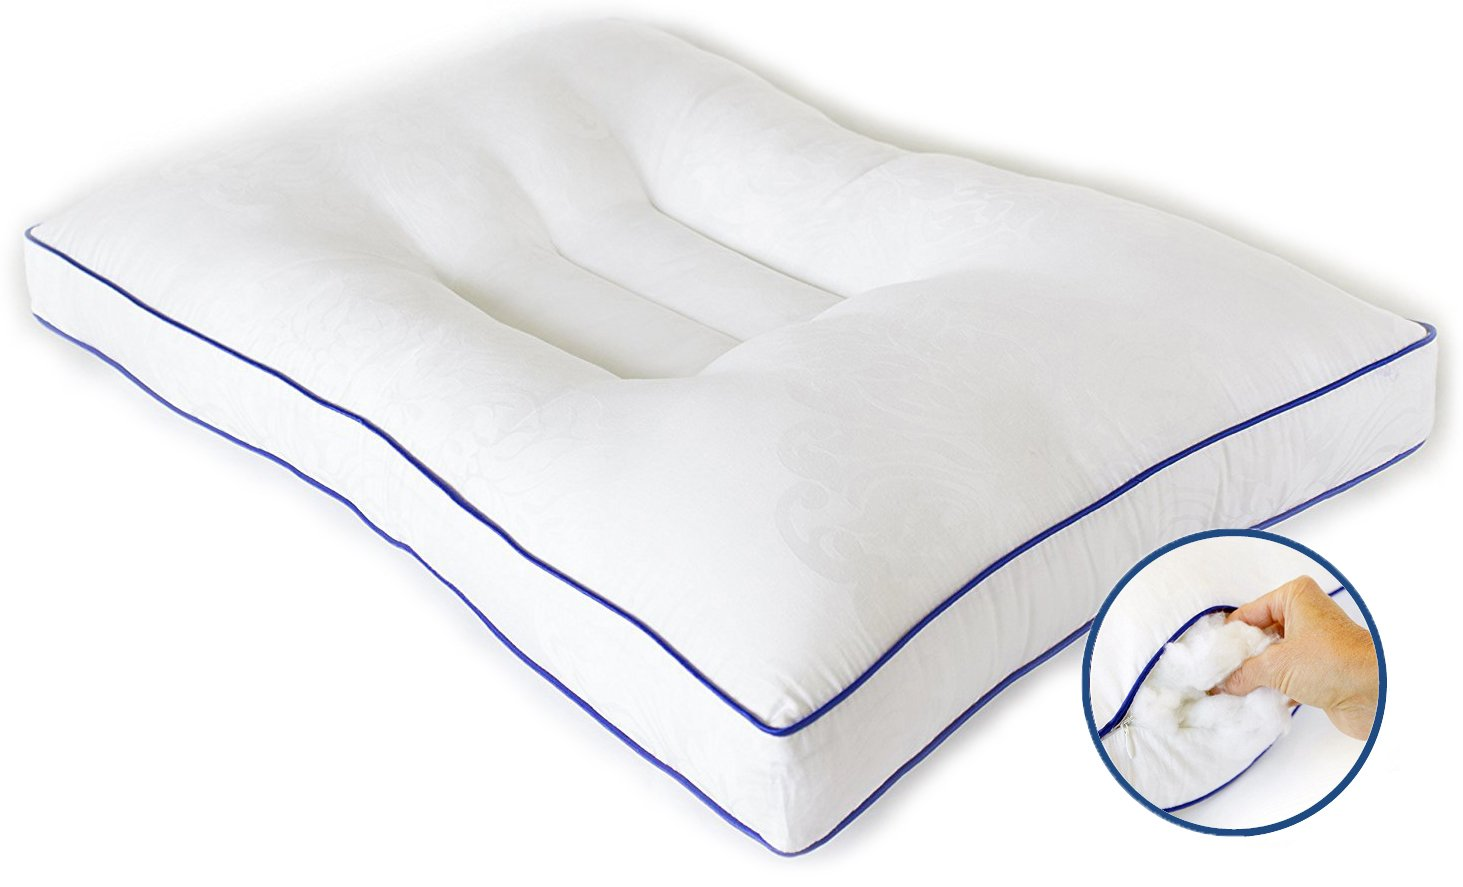 Nature's Guest Cervical Support Pillow – Best for Side Sleepers